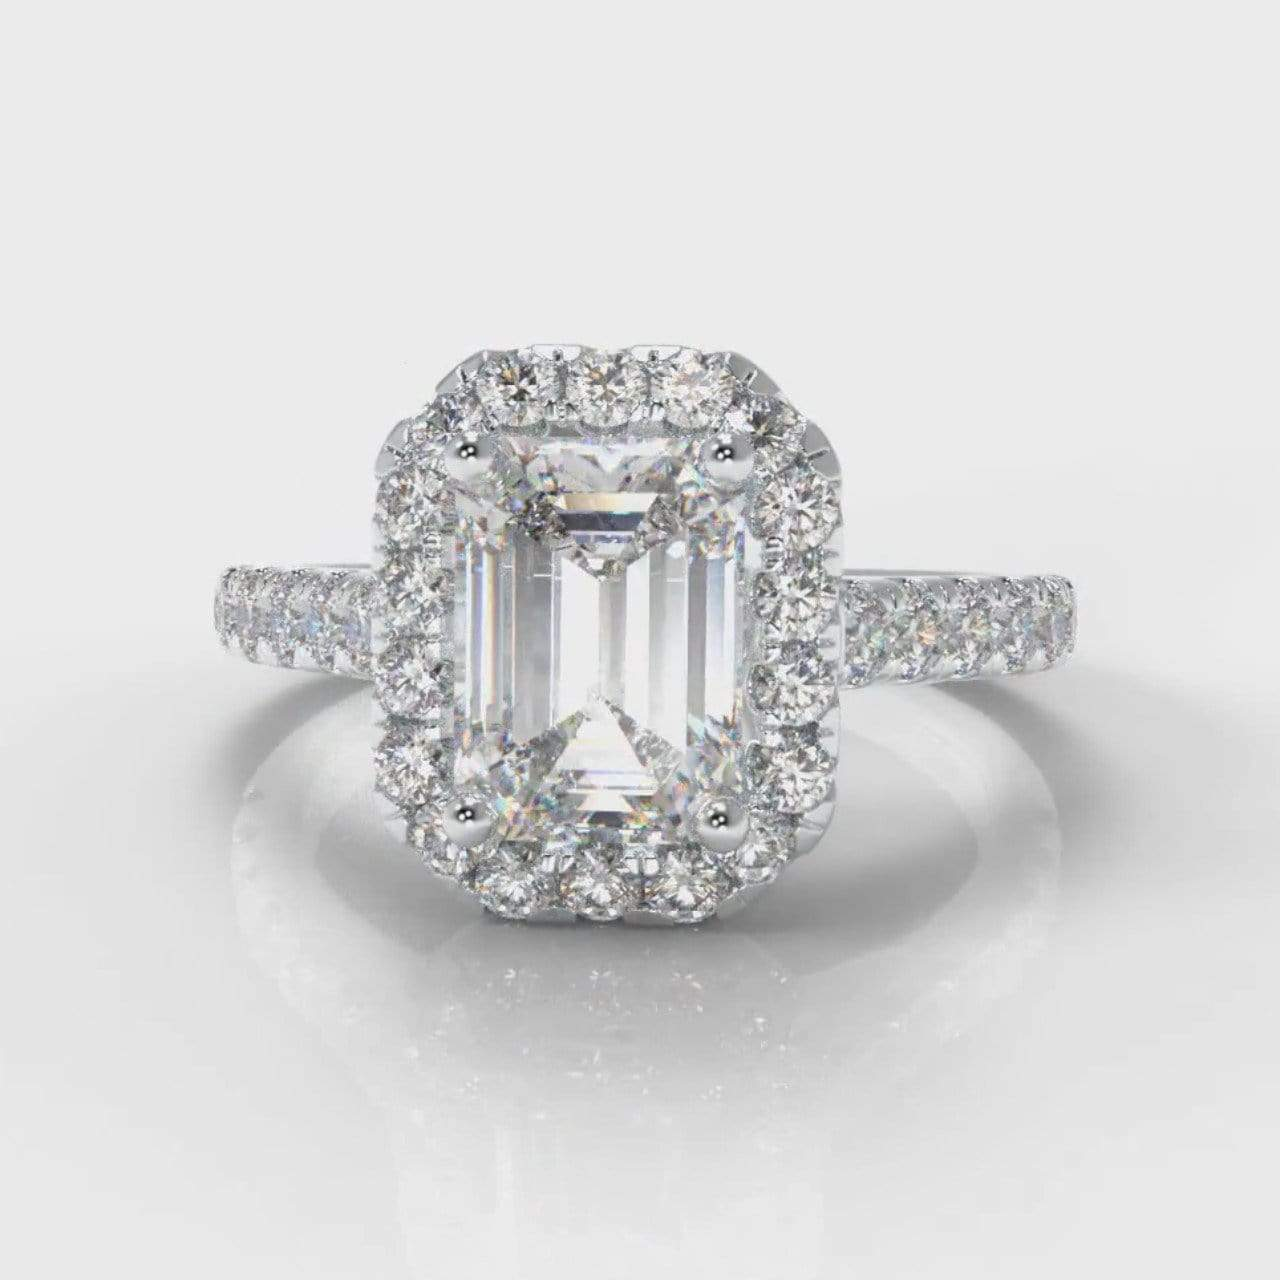 Castle Halo Emerald Cut Lab Diamond Engagement Ring